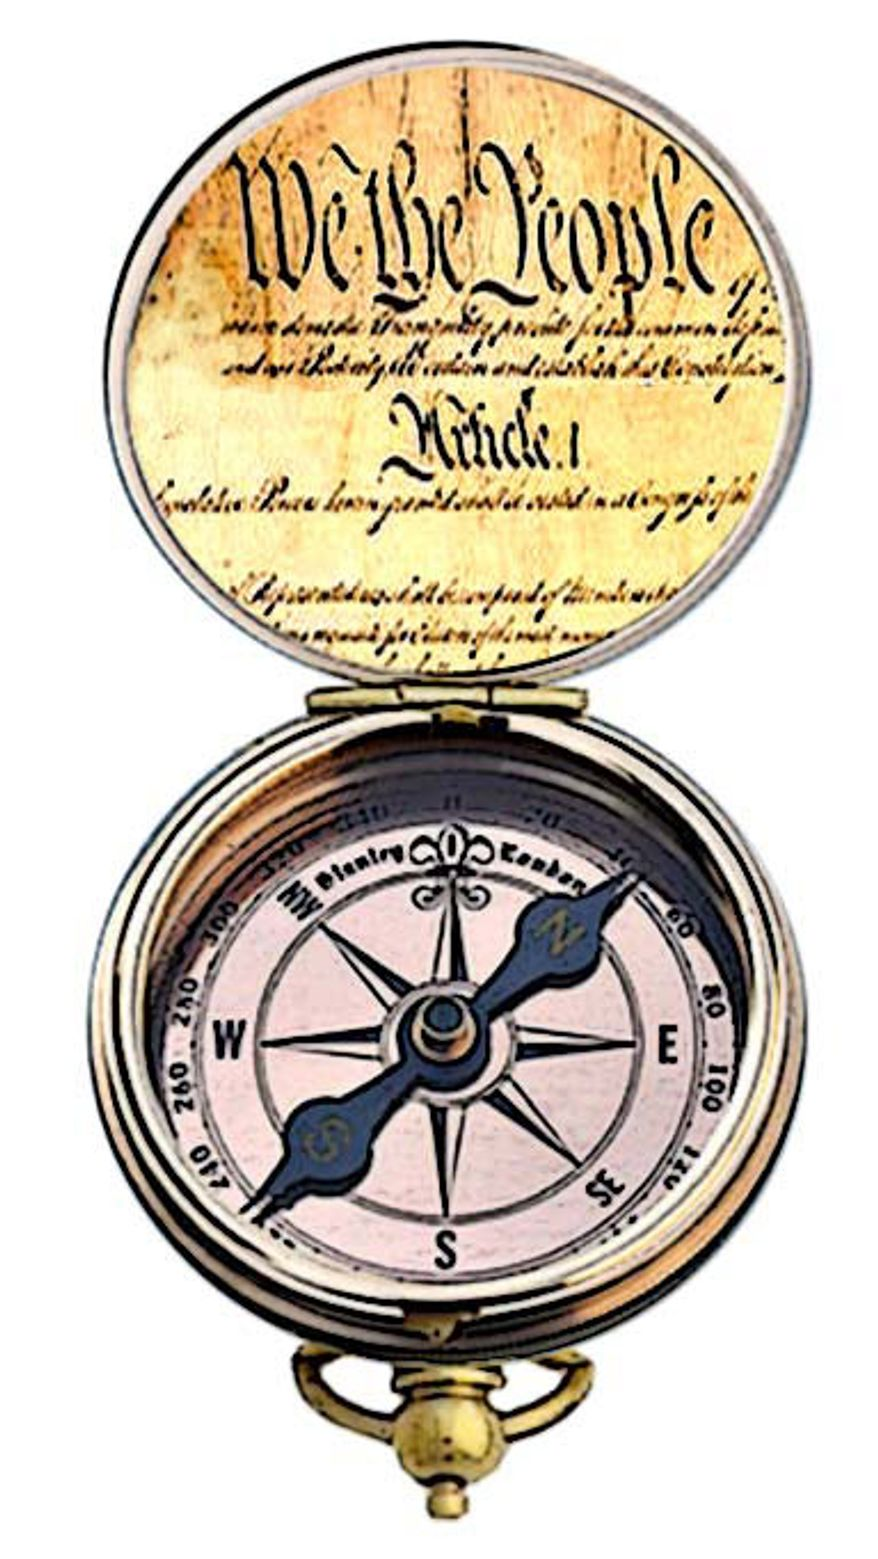 Illustration: Compass by Alexander Hunter for The Washington Times